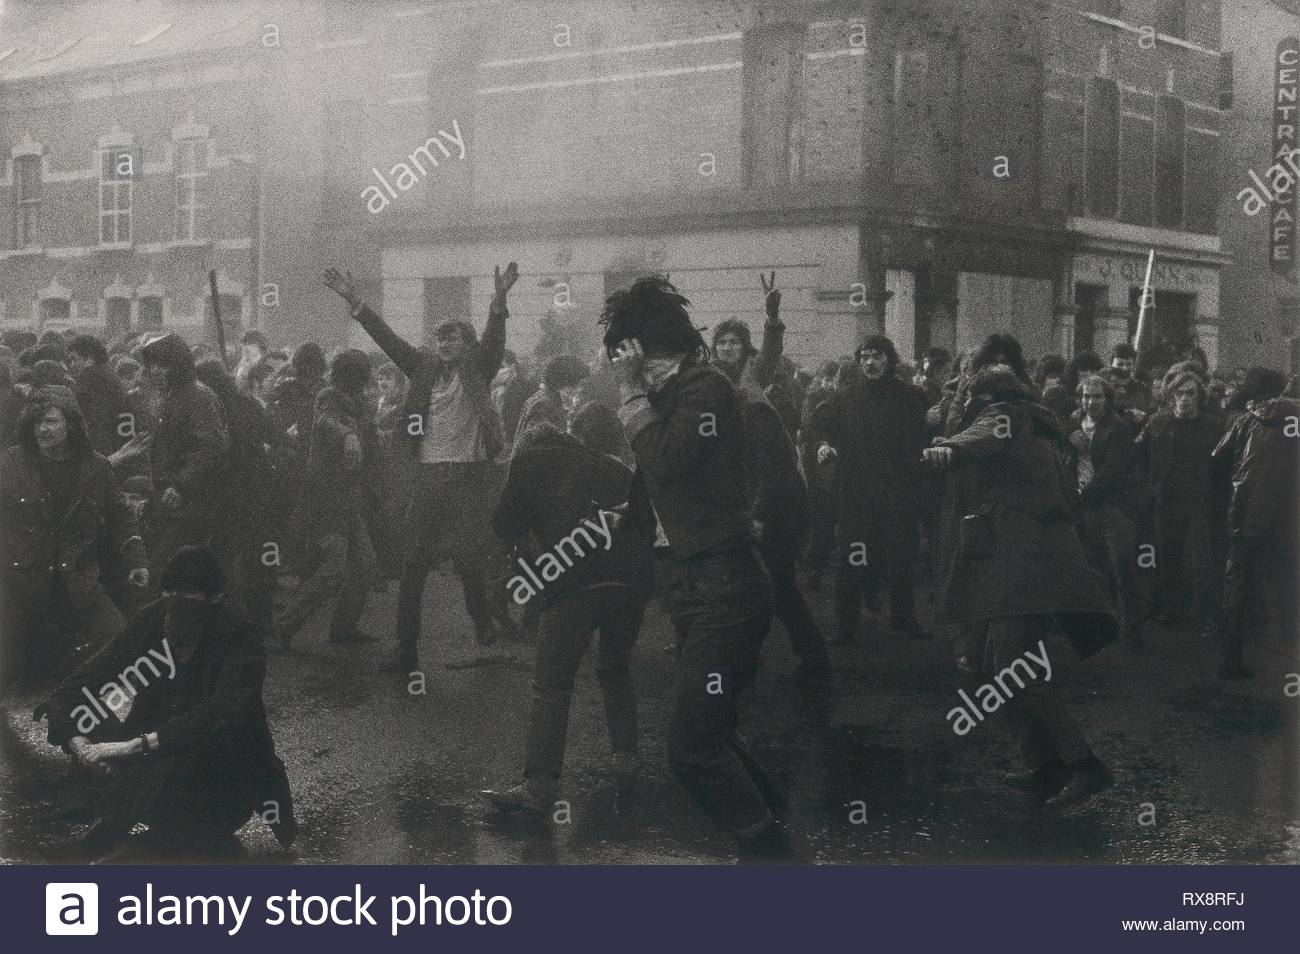 Bloody Sunday, one minute before first British paratroop regiment fires, killing thirteen civilians, Londonderry. Gilles Peress; French, born 1946. Date: 1972. Dimensions: 76.3 × 101.4 cm. Gelatin silver print. Origin: France. Museum: The Chicago Art Institute. - Stock Image